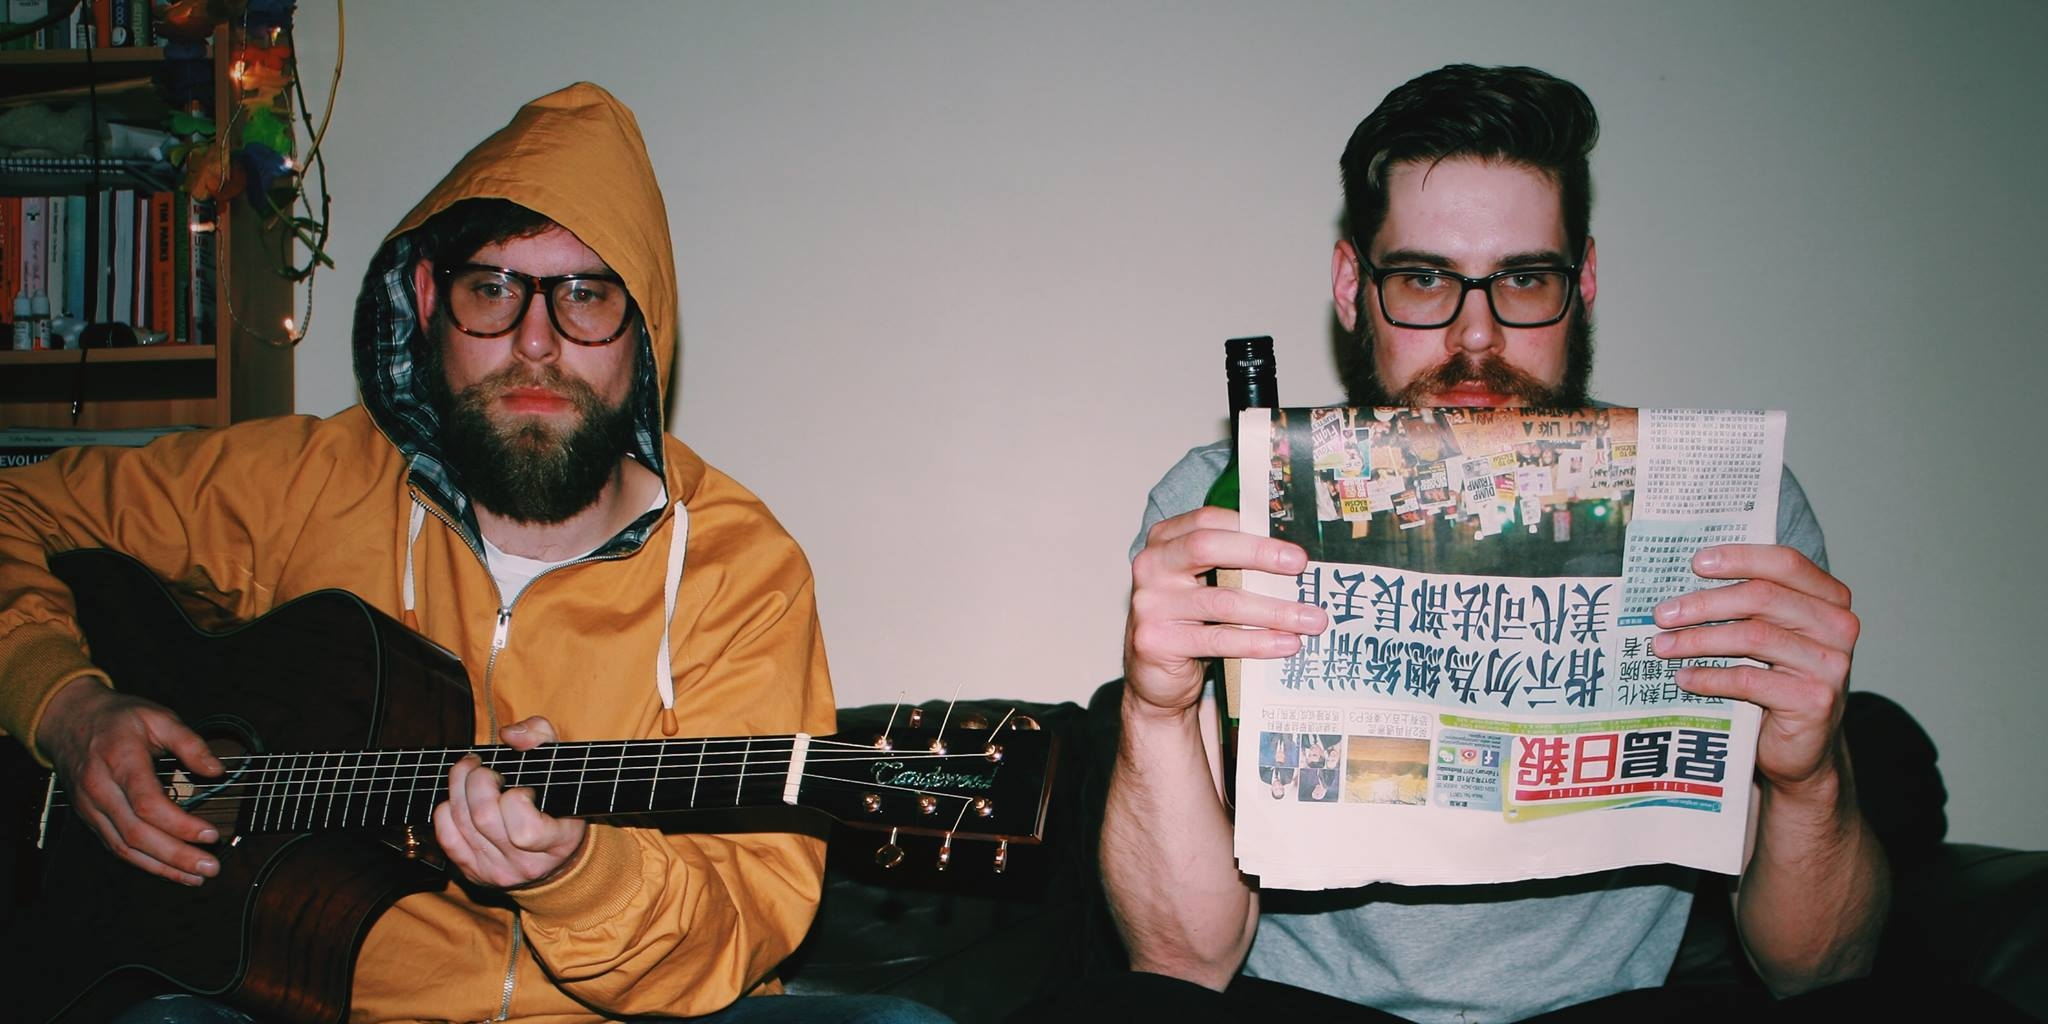 THE IN-HERE BROTHERS - Two bearded men who play 90's dance tracks on guitar, that will get you big fish, little fish , cardboard boxing!Daz handles the guitar, loop pedals and vocals.Gaz takes care of lead guitar and bass.Simple.